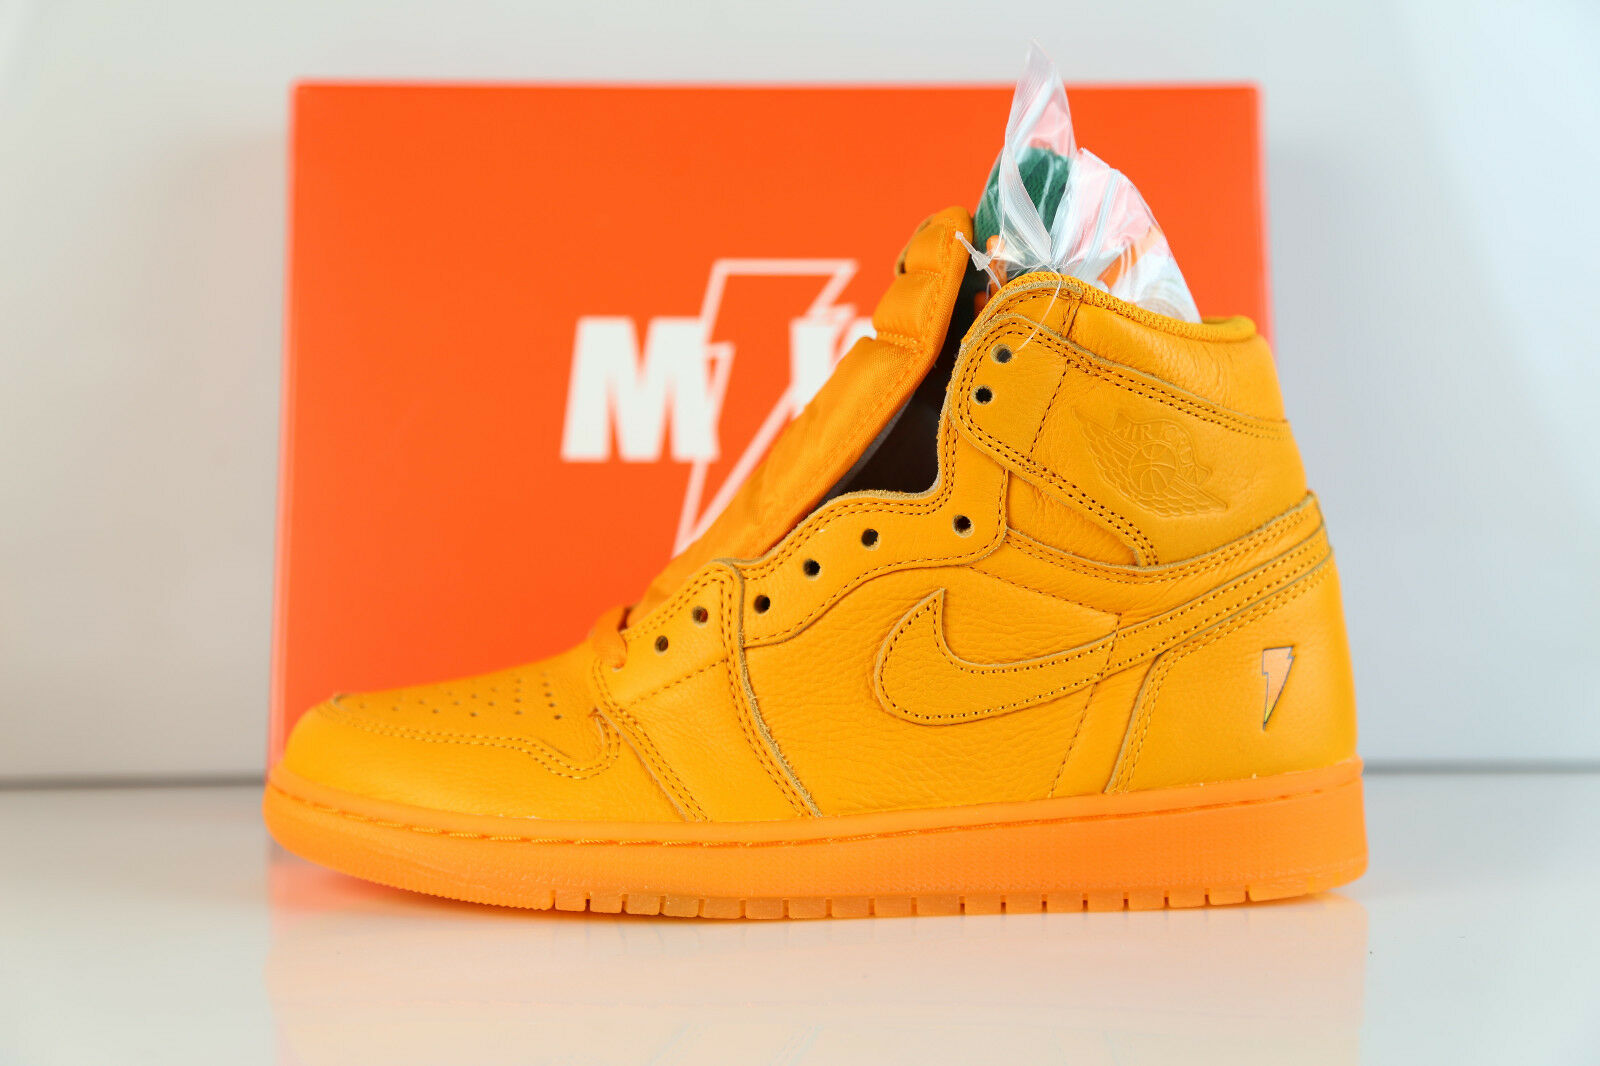 nike air jordan retro 1 haut - og g8rd gatorade gatorade g8rd orange aj5997-880 8-12.5 8992a6